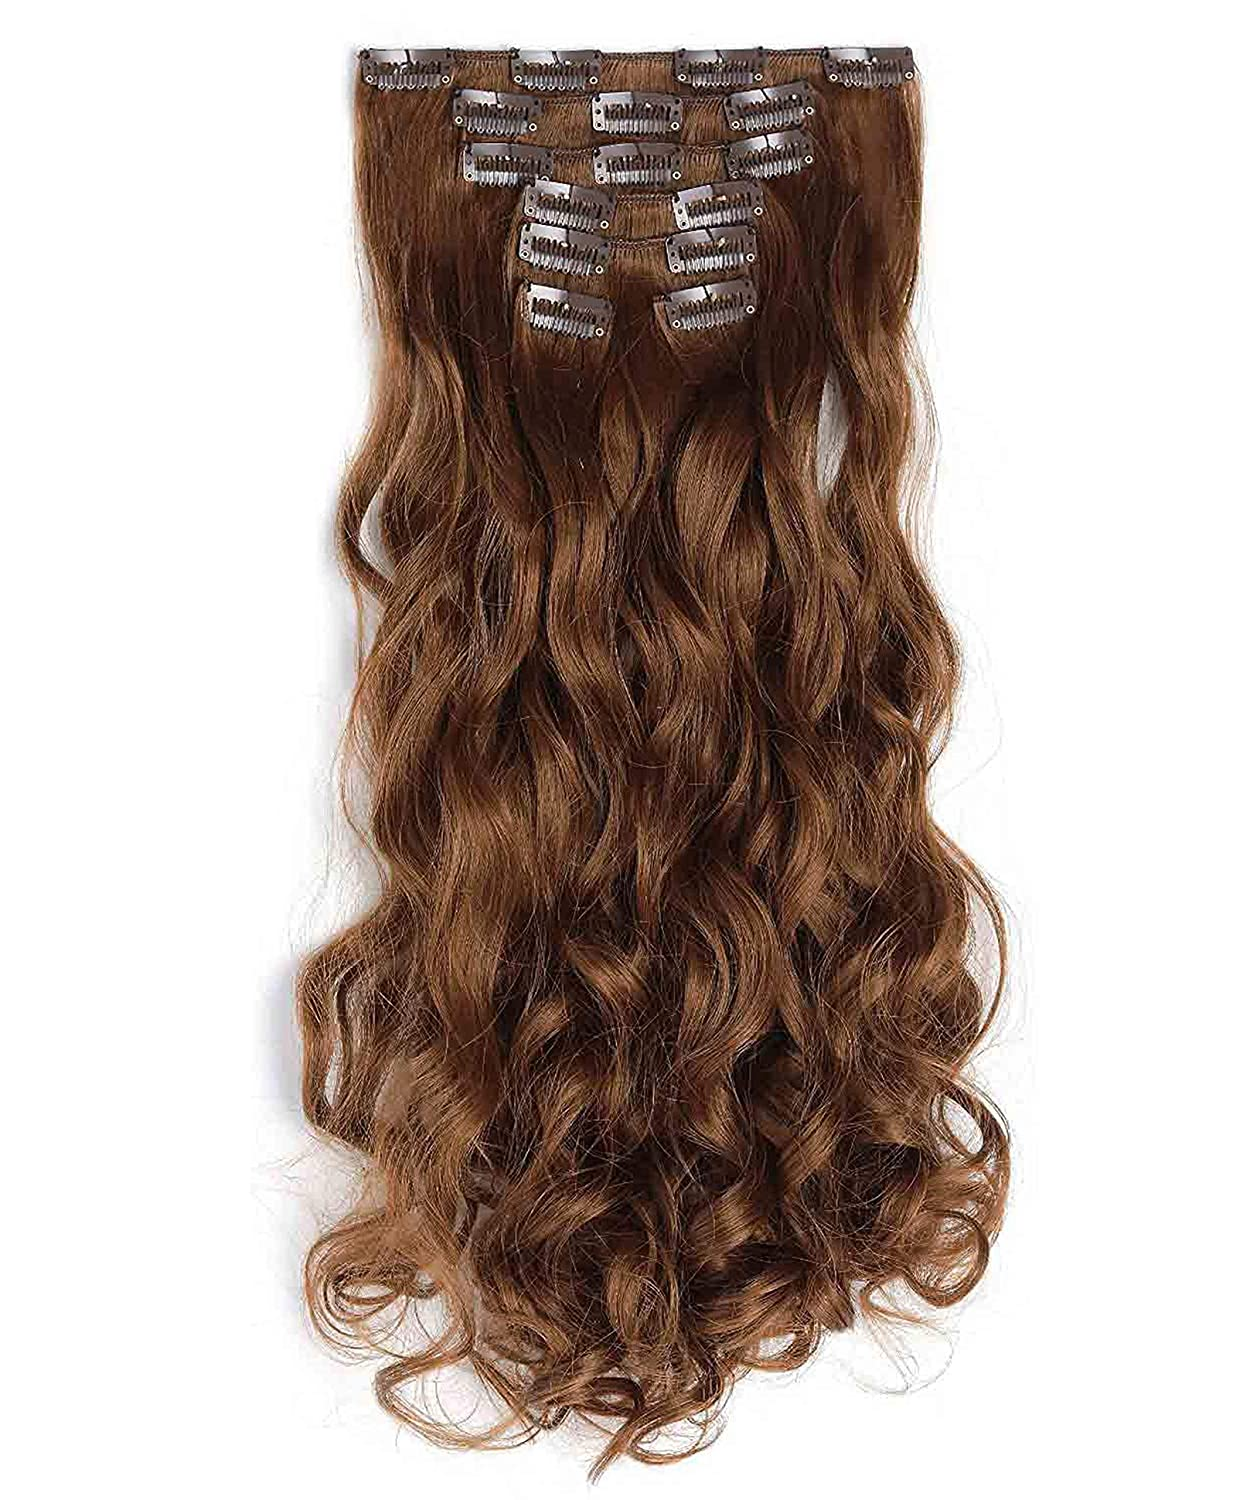 OneDor 20 Curly Full Head Clip in Synthetic Hair Extensions 7pcs 140g (60#-Platinum Blonde) 999